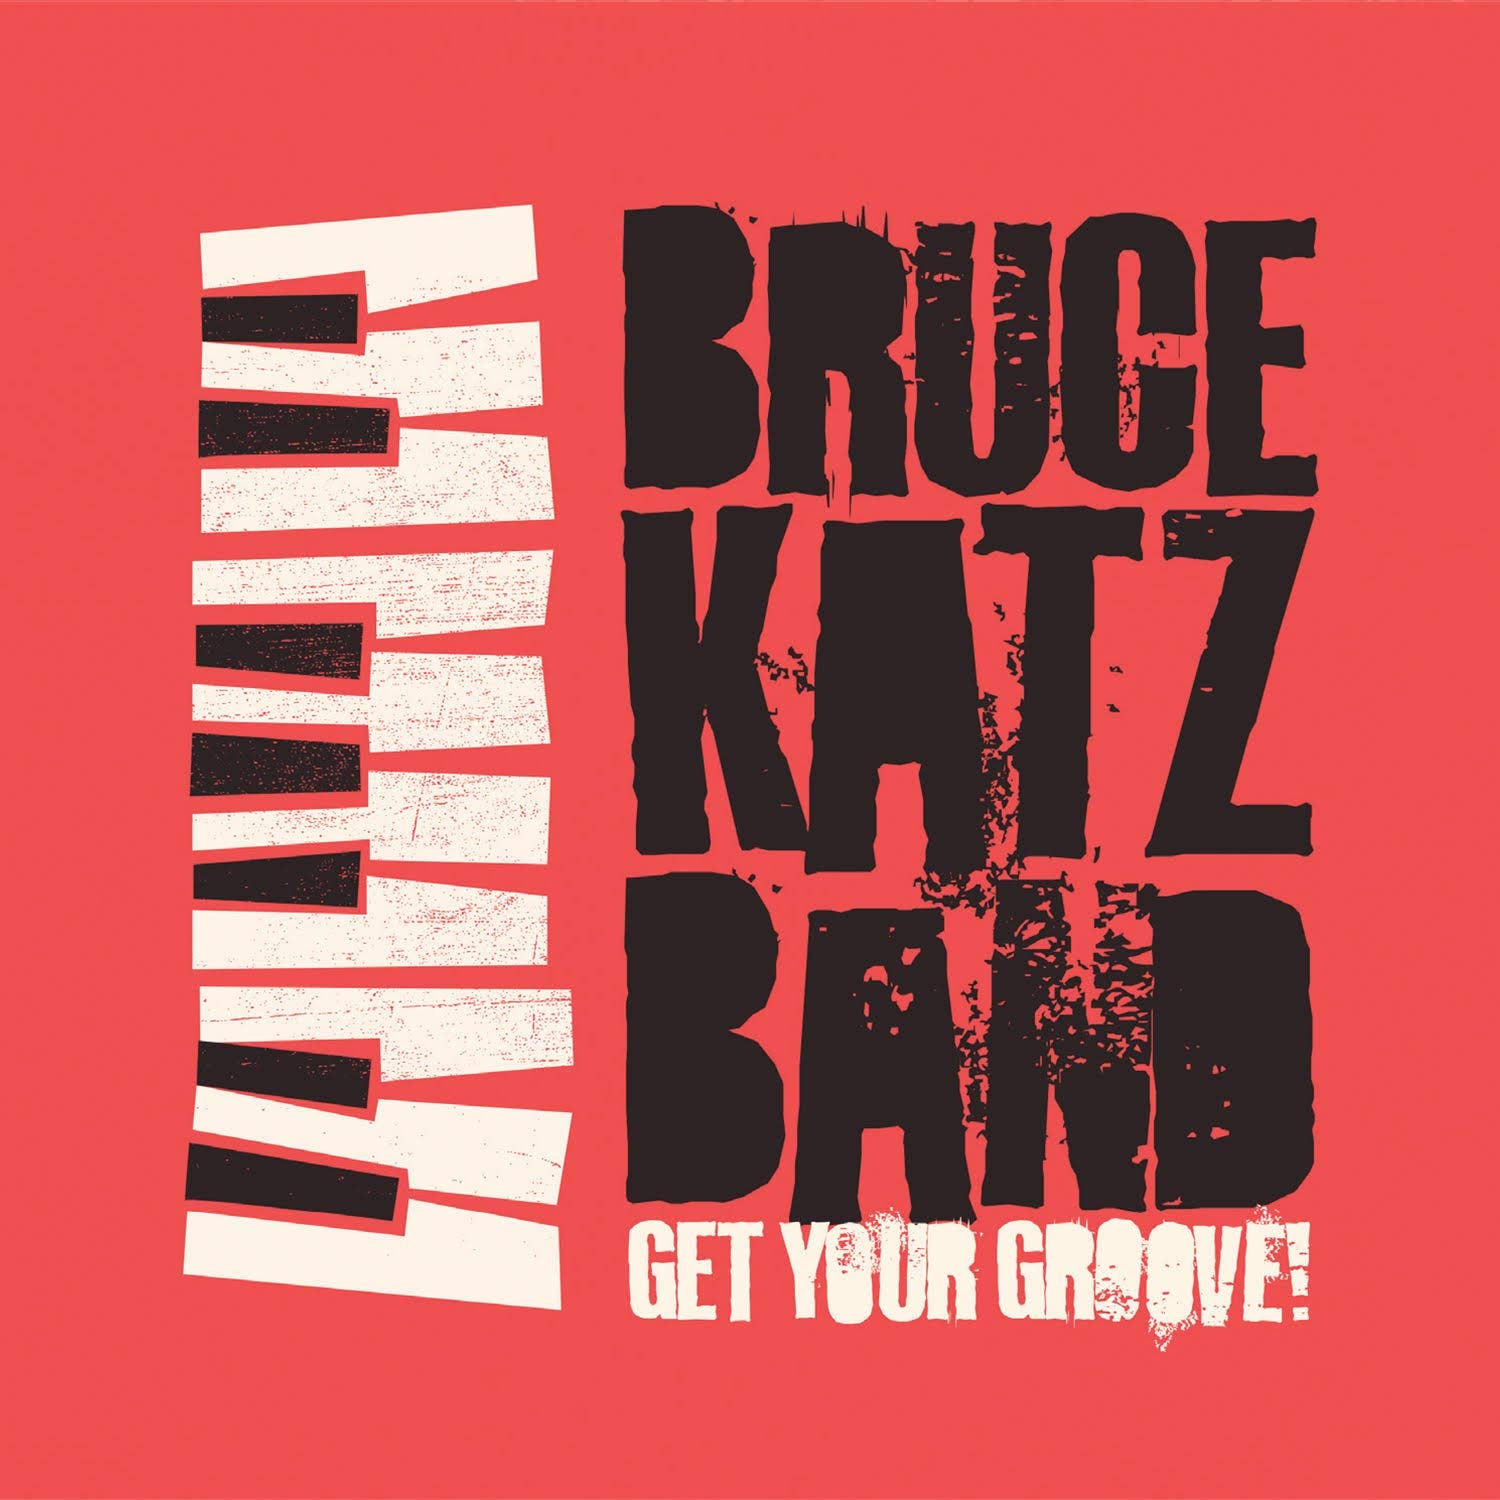 bruce-katz-band-get-your-groove